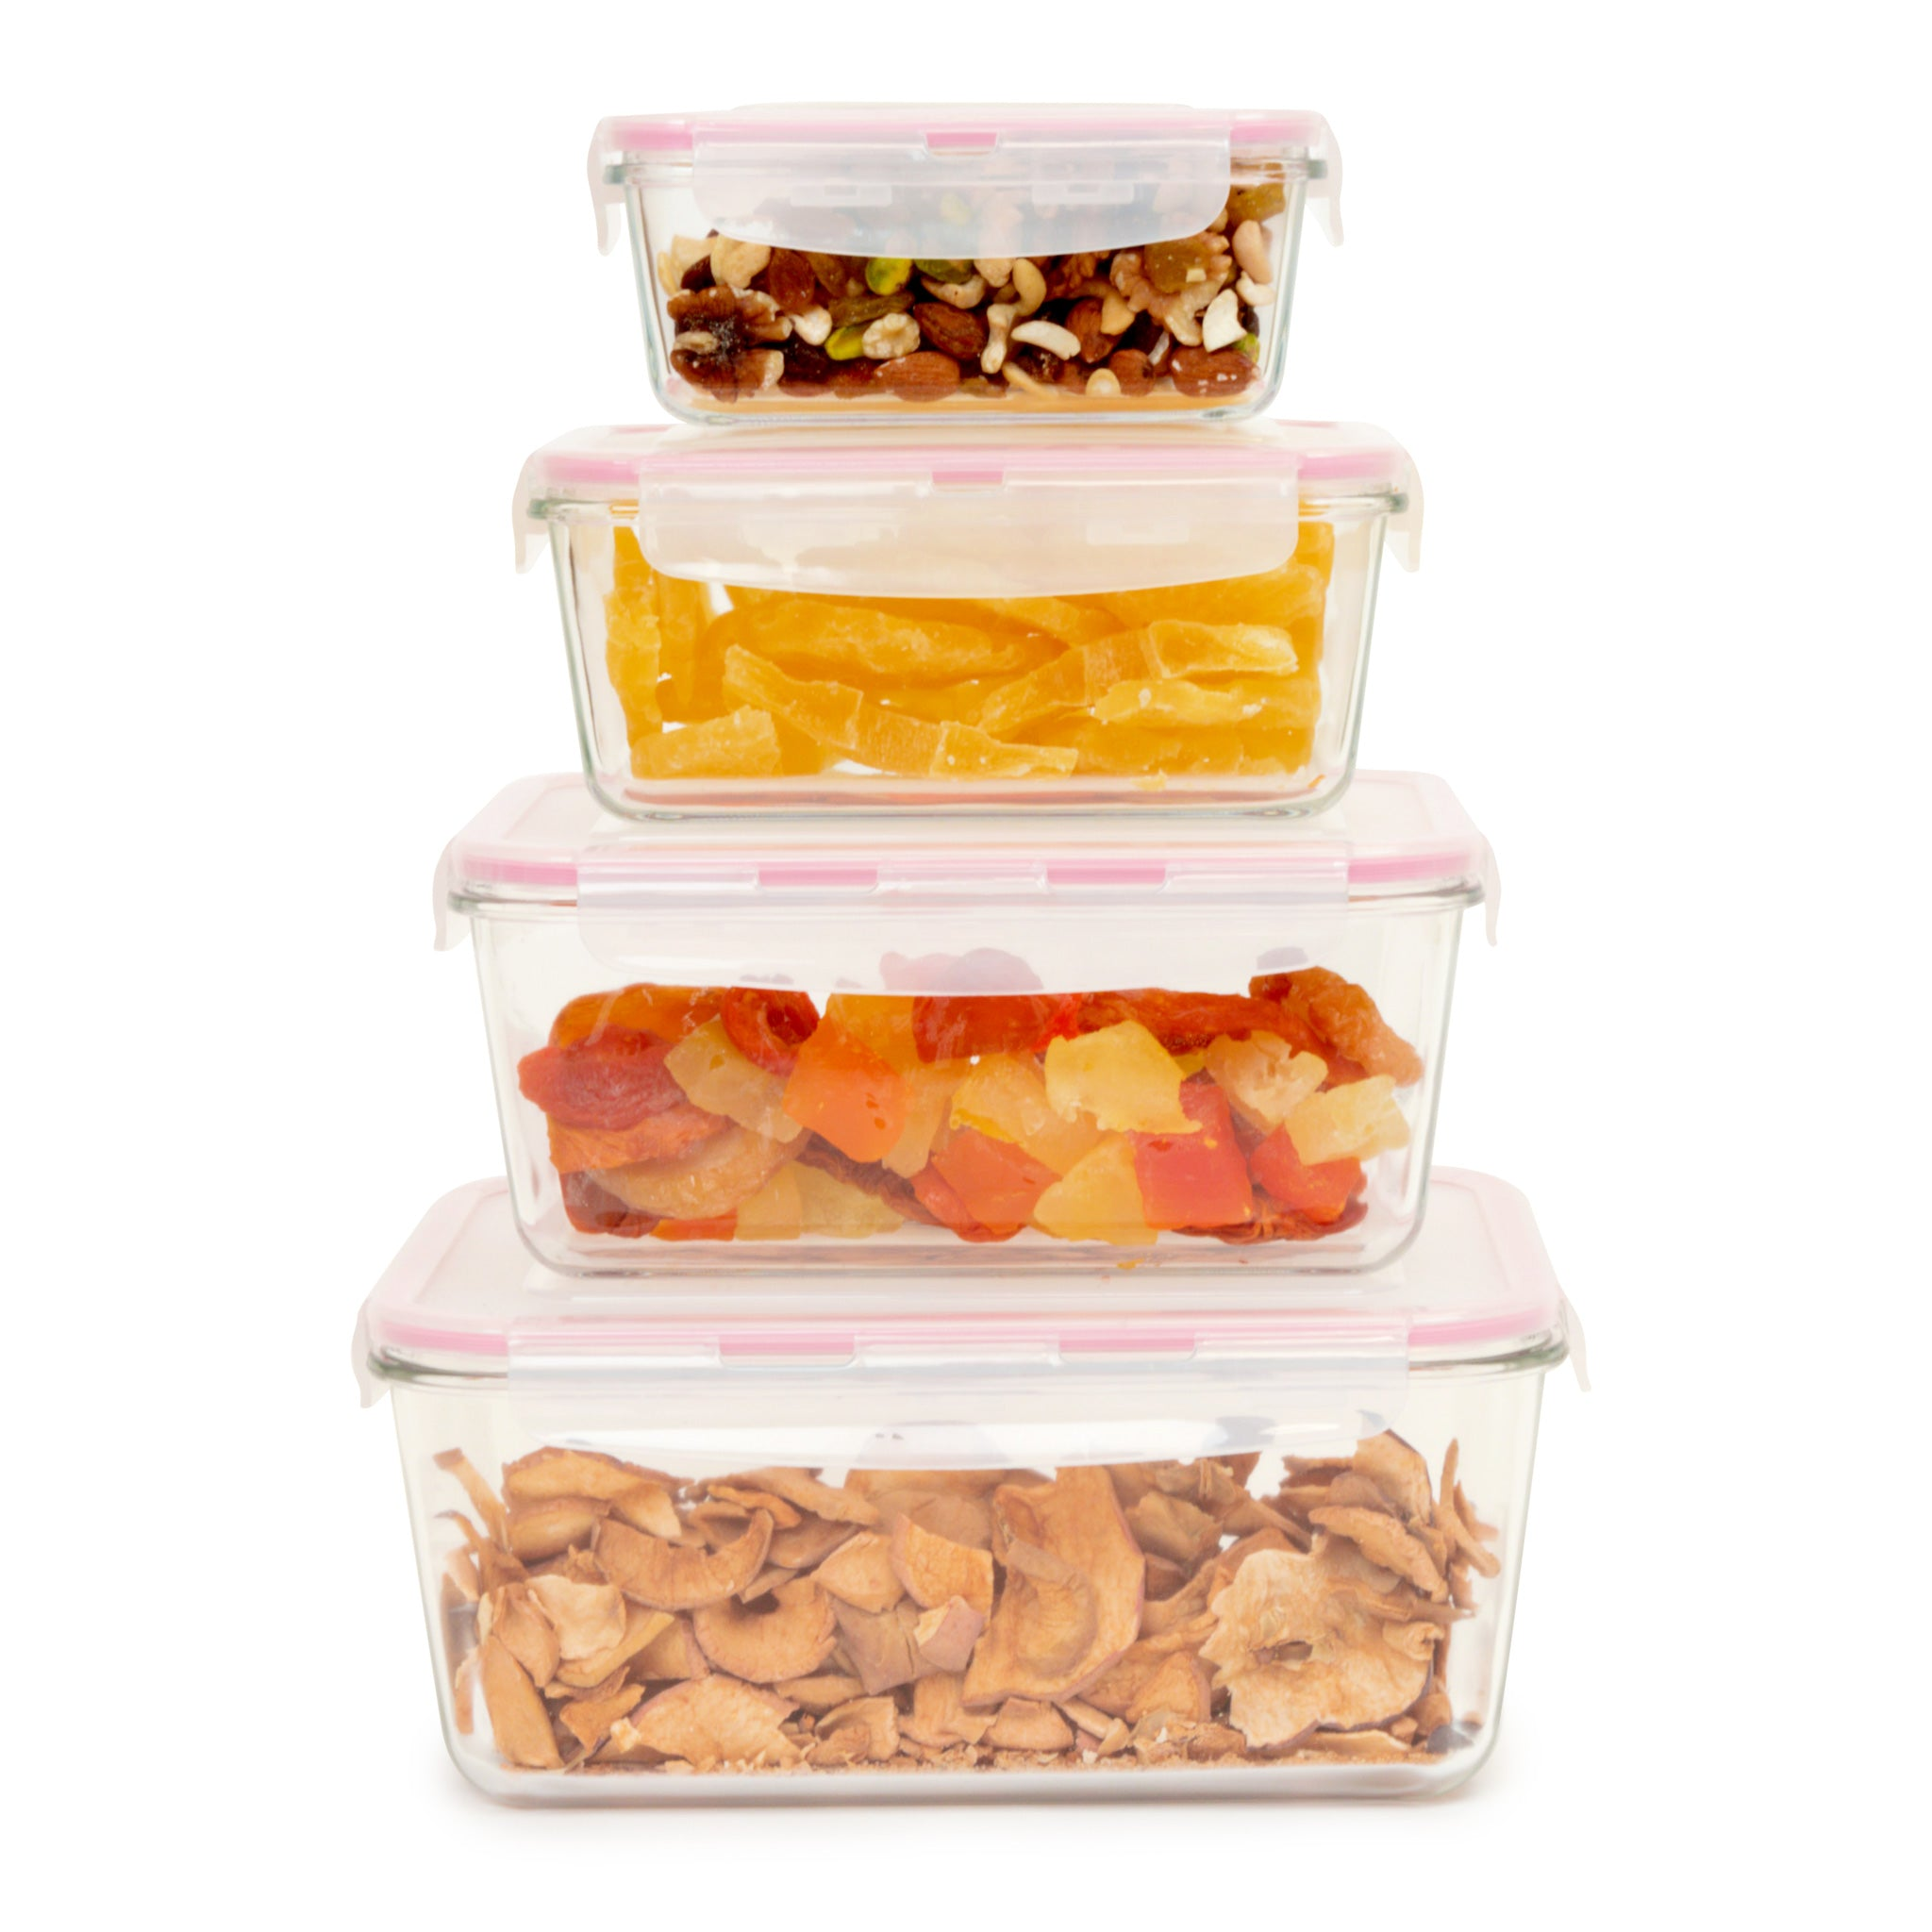 GlasLife® Refurbished 4-Piece Air-Tight Glass Containers - Rectangular